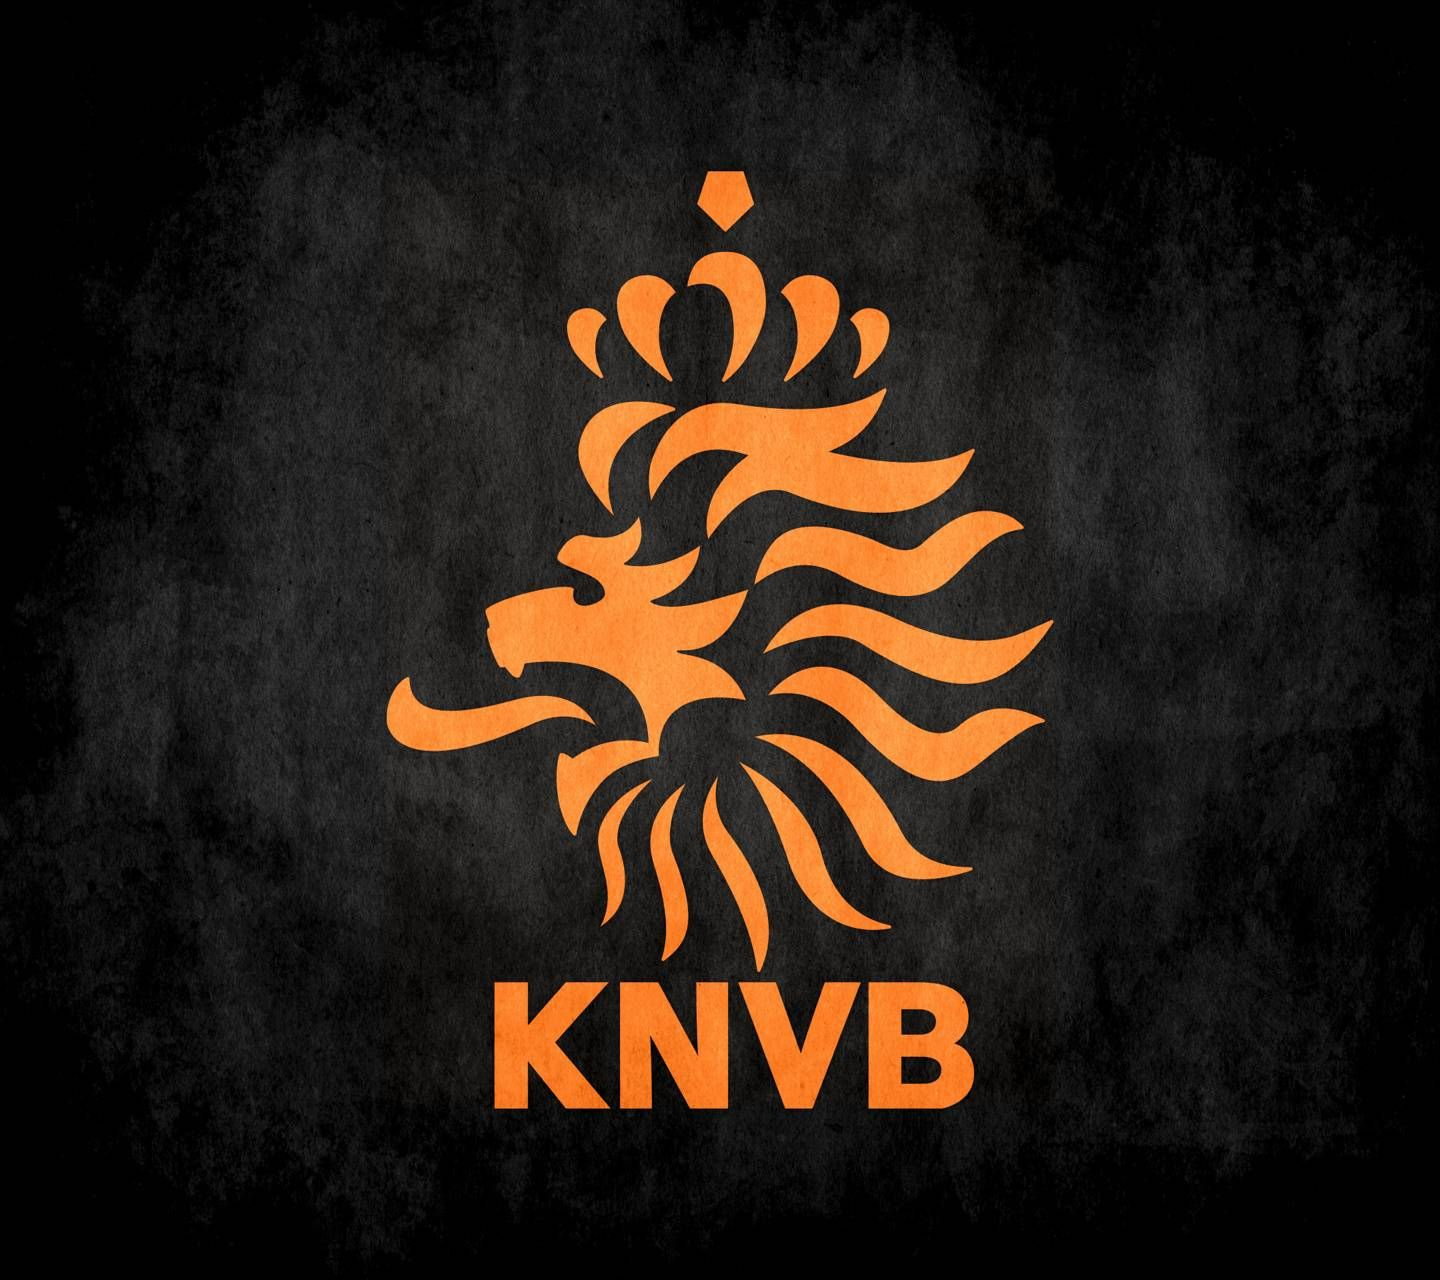 Download Holland KNVB Wallpaper by Deville83 f5 Free